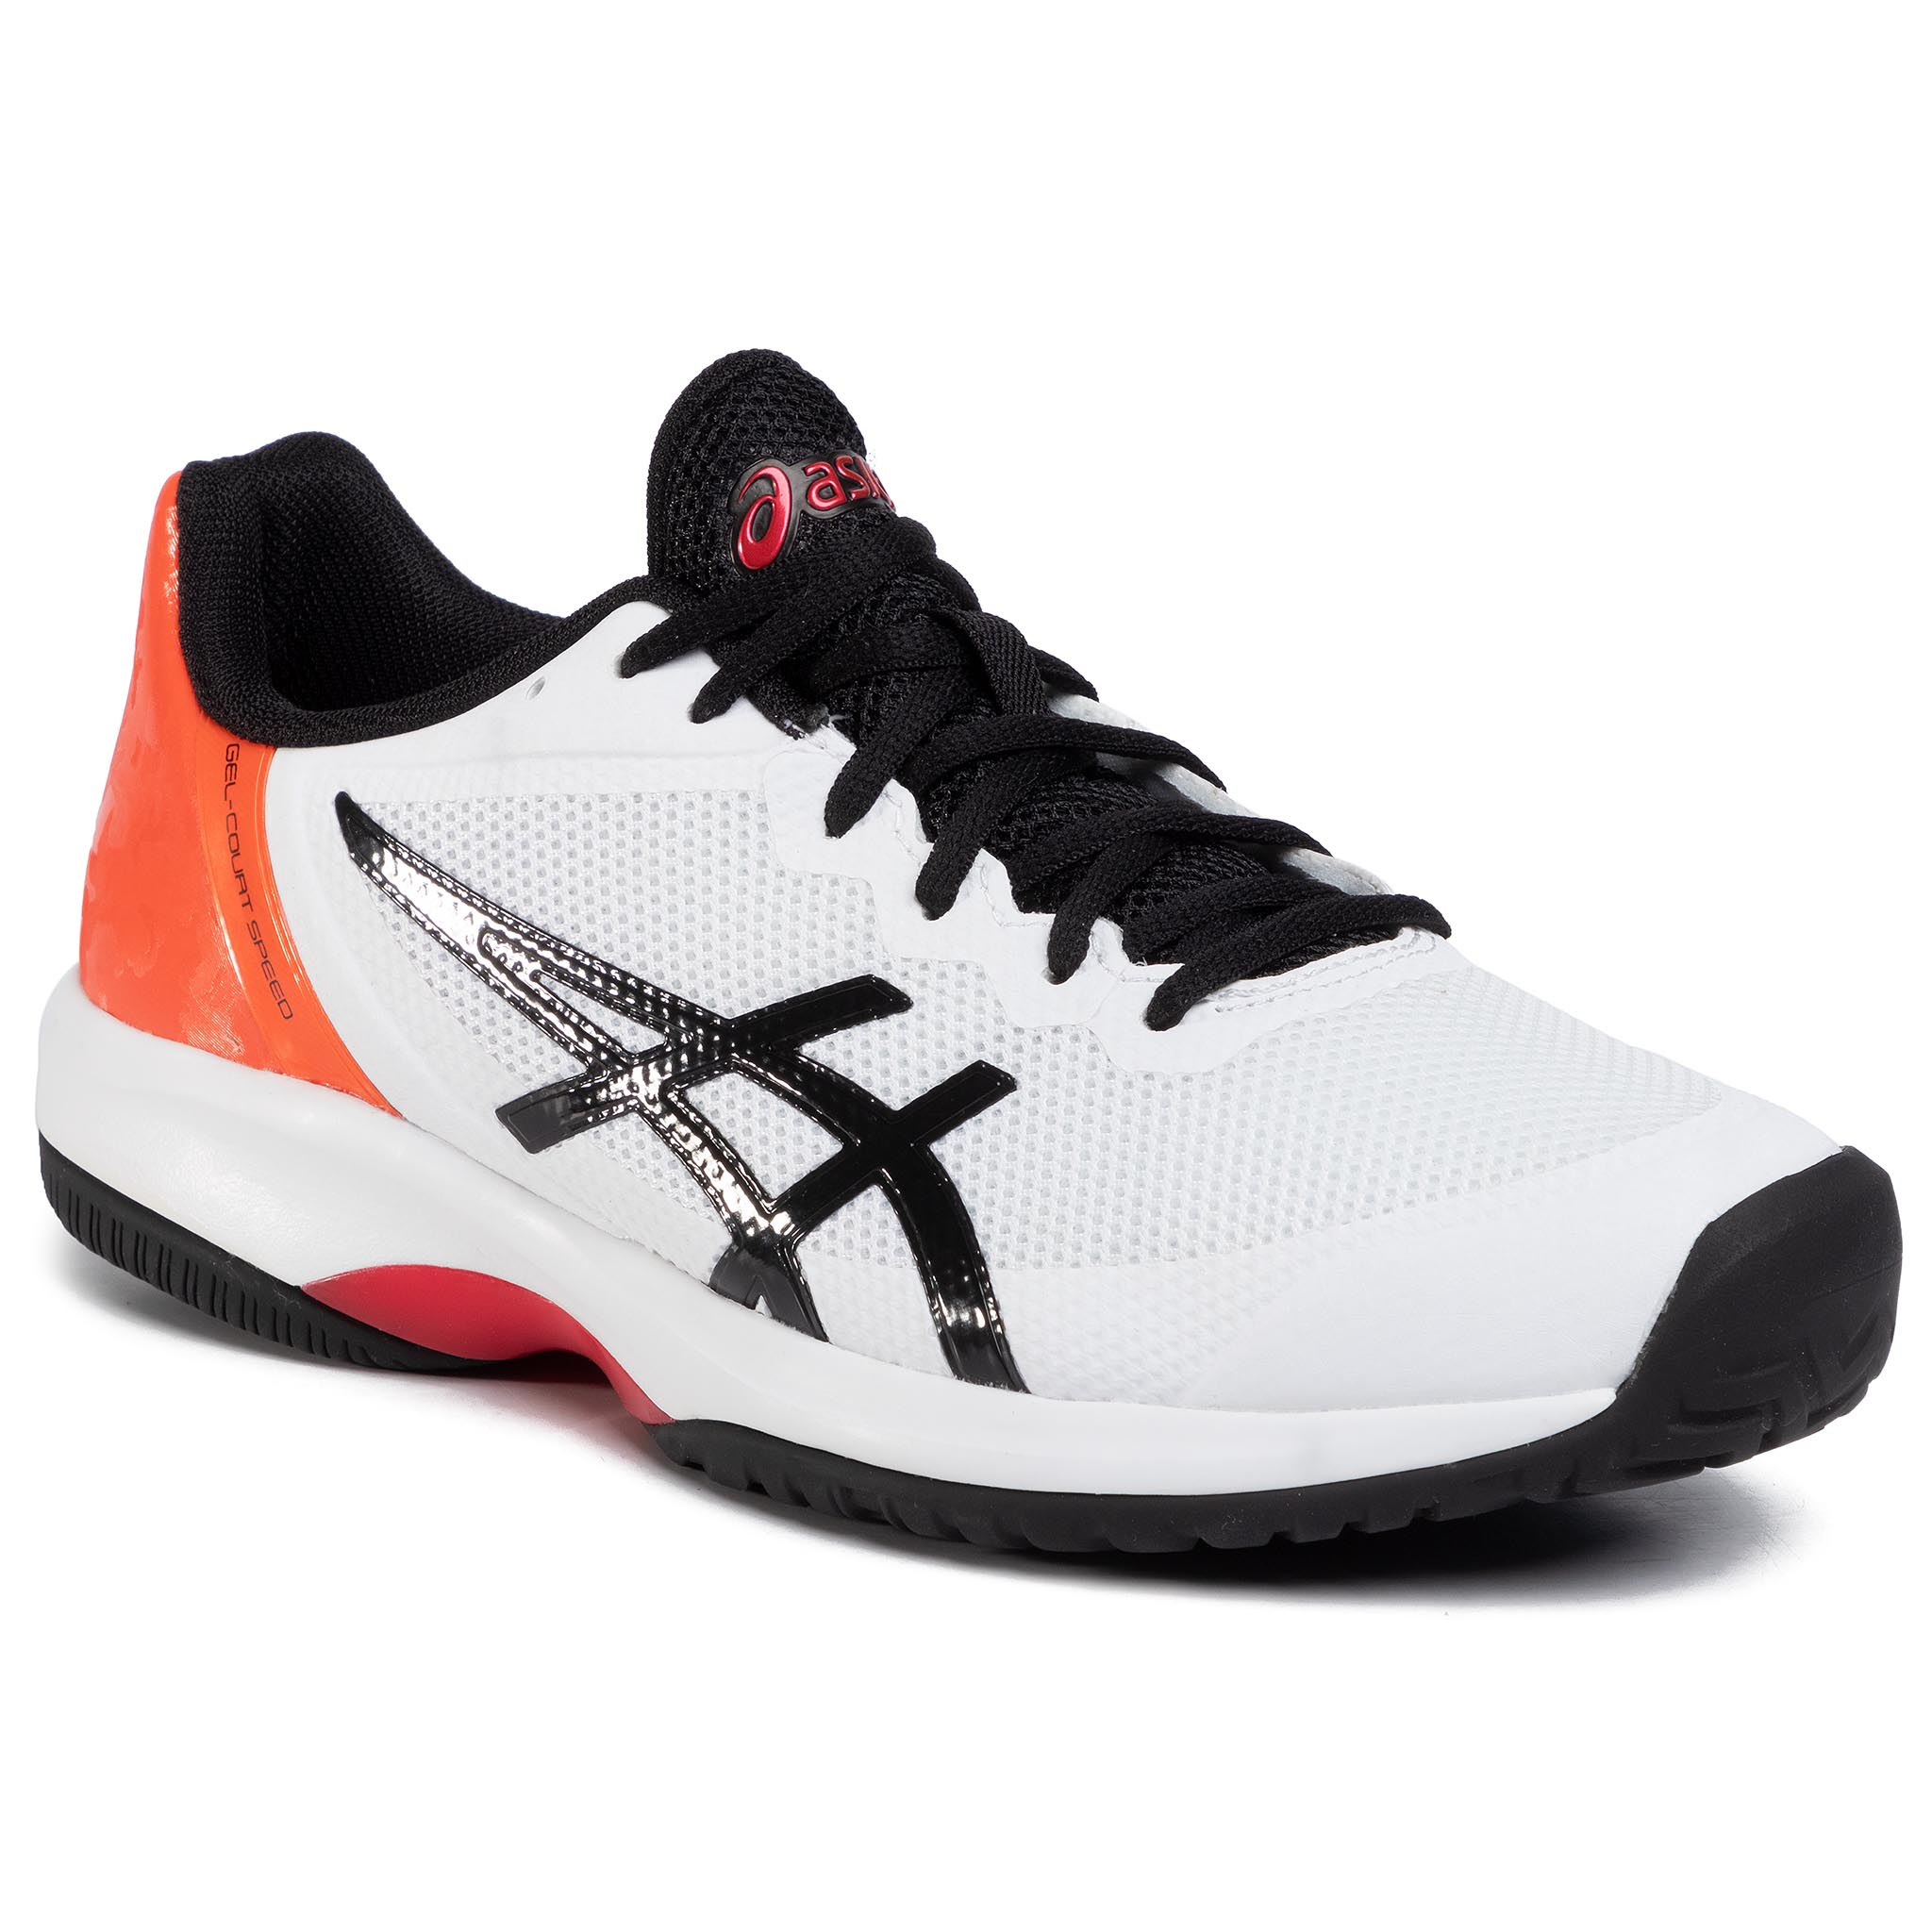 Pantofi Asics - Gel-Court Speed E800n White/Black 100 imagine epantofi.ro 2021